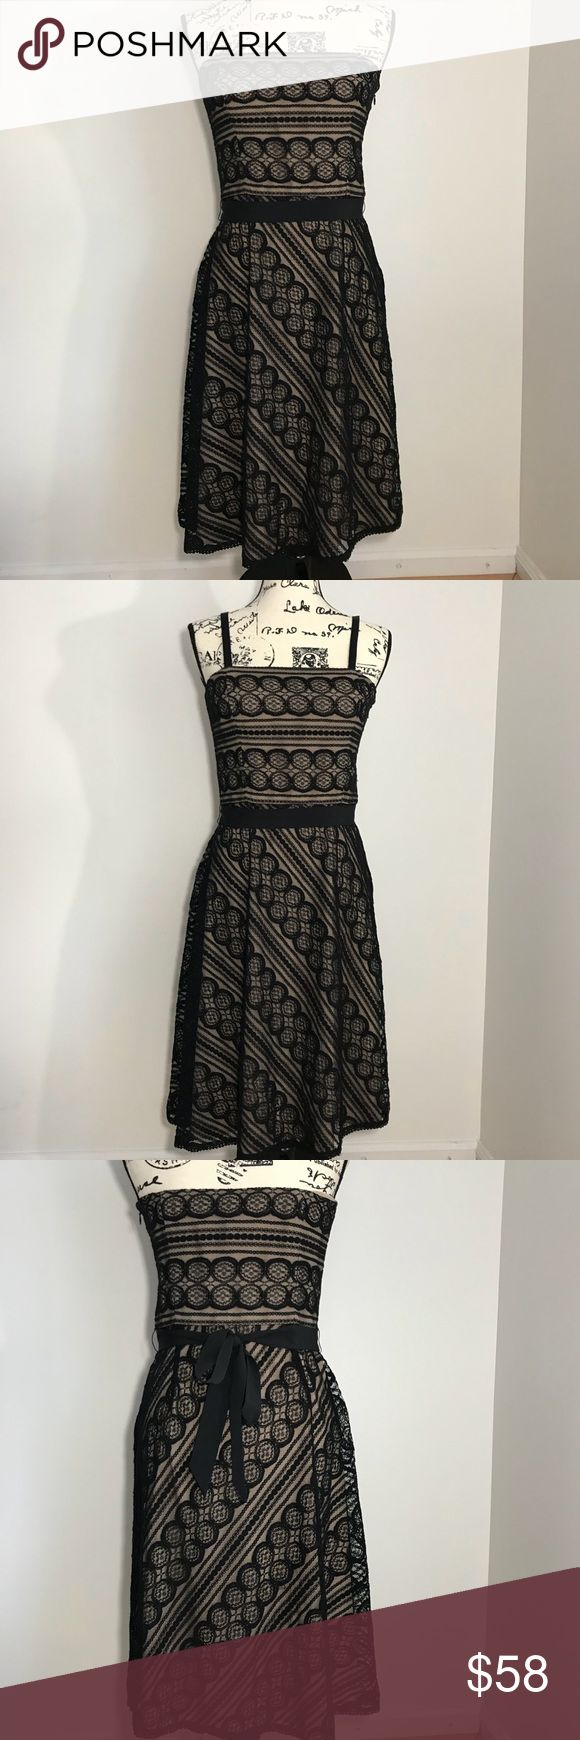 """LOFT Black Lace Nude Evening Cocktail Dress Sz 6 LOFT Women's Black Lace Nude Evening Cocktail Dress Size 6  Preowned excellent condition shell: 60% cotton, 40% nylon lining 100% polyester Black lace and nude underlay, removable adjustable straps, black tie belt that can also be removed  side zipper closure with clasp All measurements are approximate and taken while laying flat: armpit to armpit 16"""" length 34"""" LOFT Dresses"""